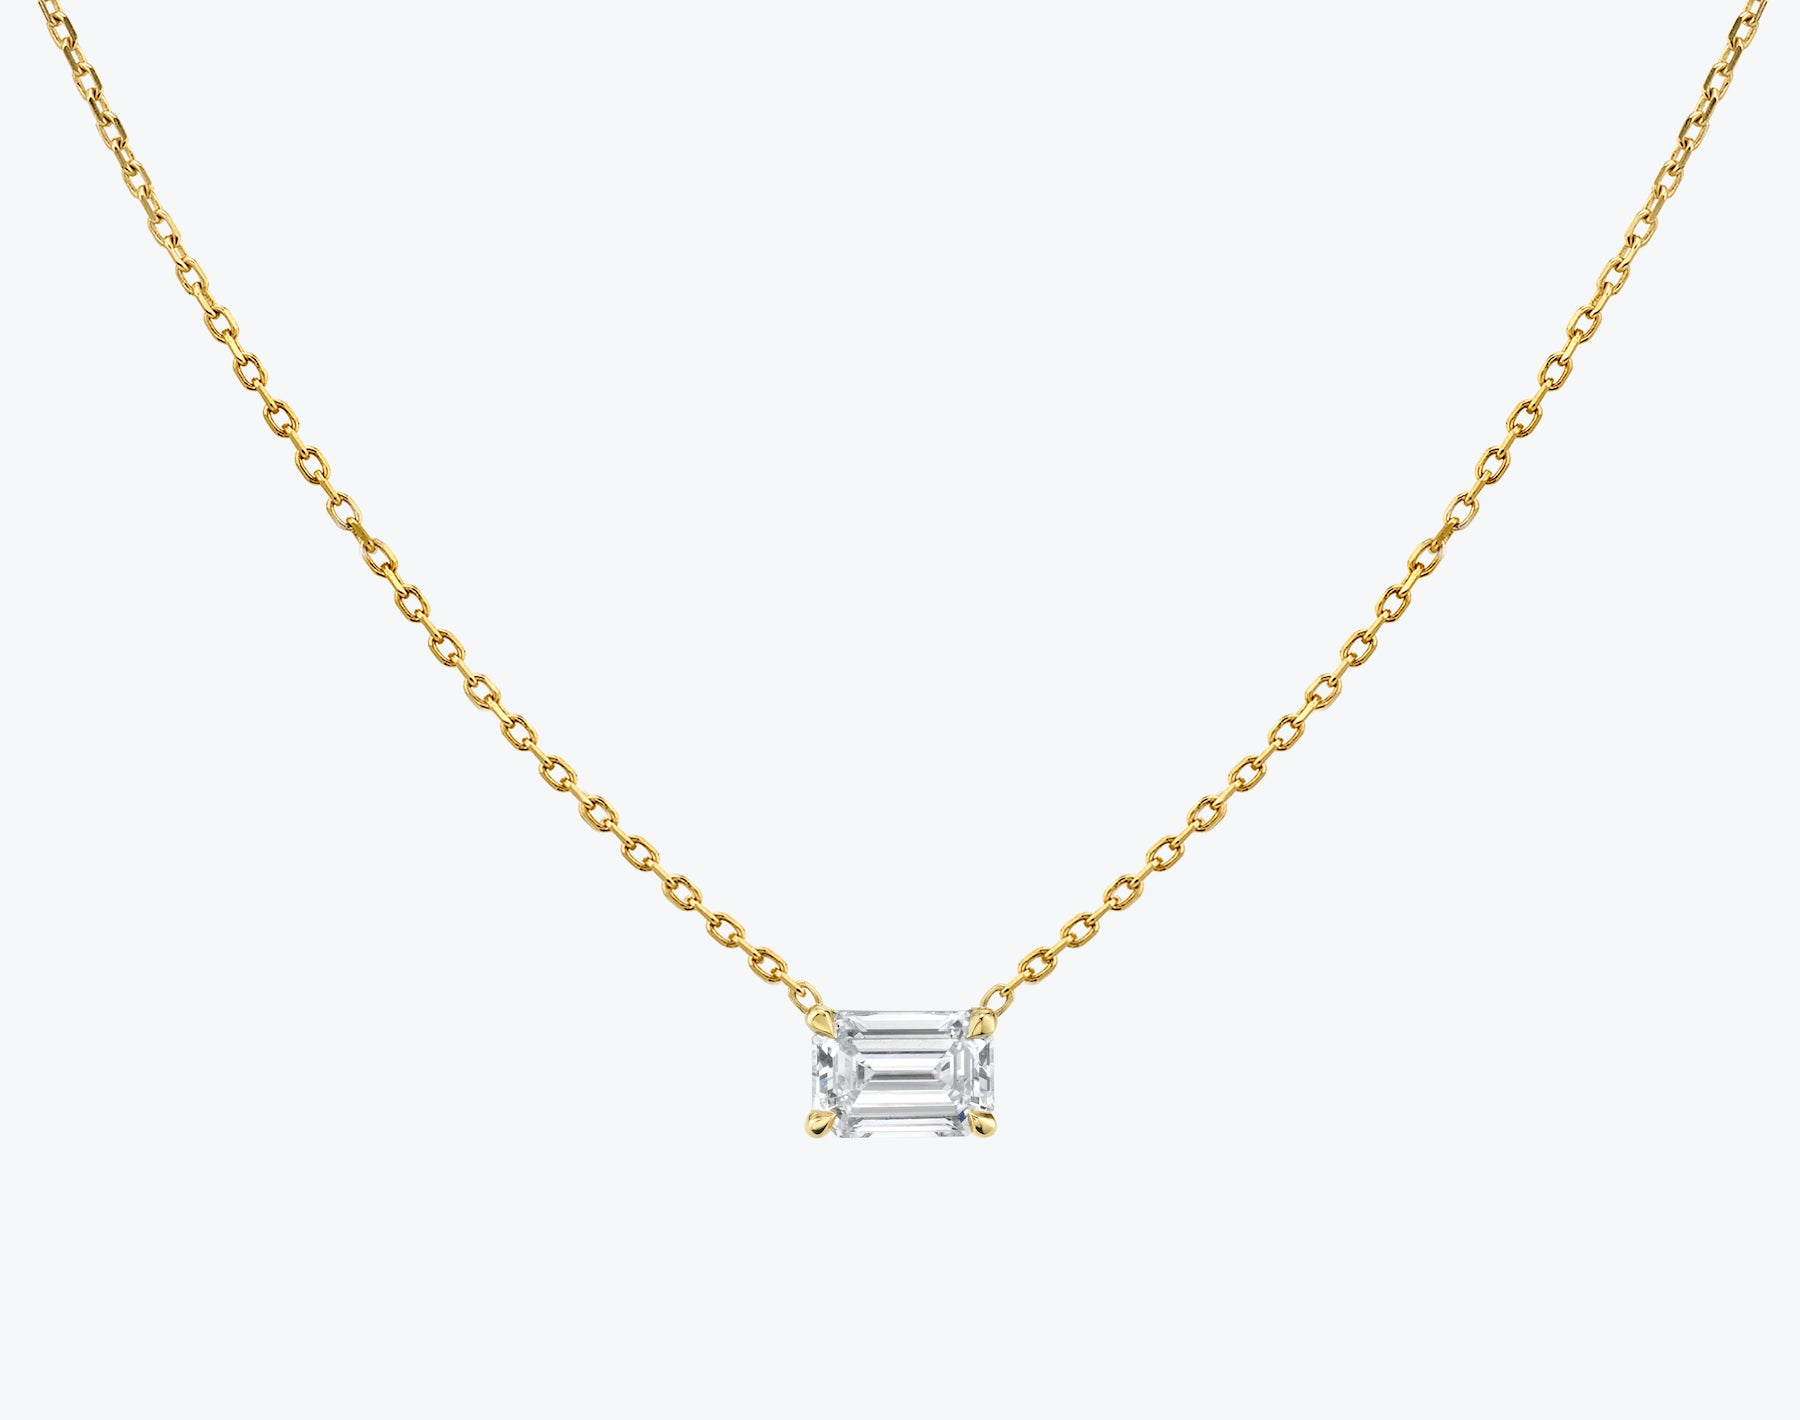 Vrai 14K solid gold solitaire emerald diamond necklace 1ct minimalist delicate, 14K Yellow Gold